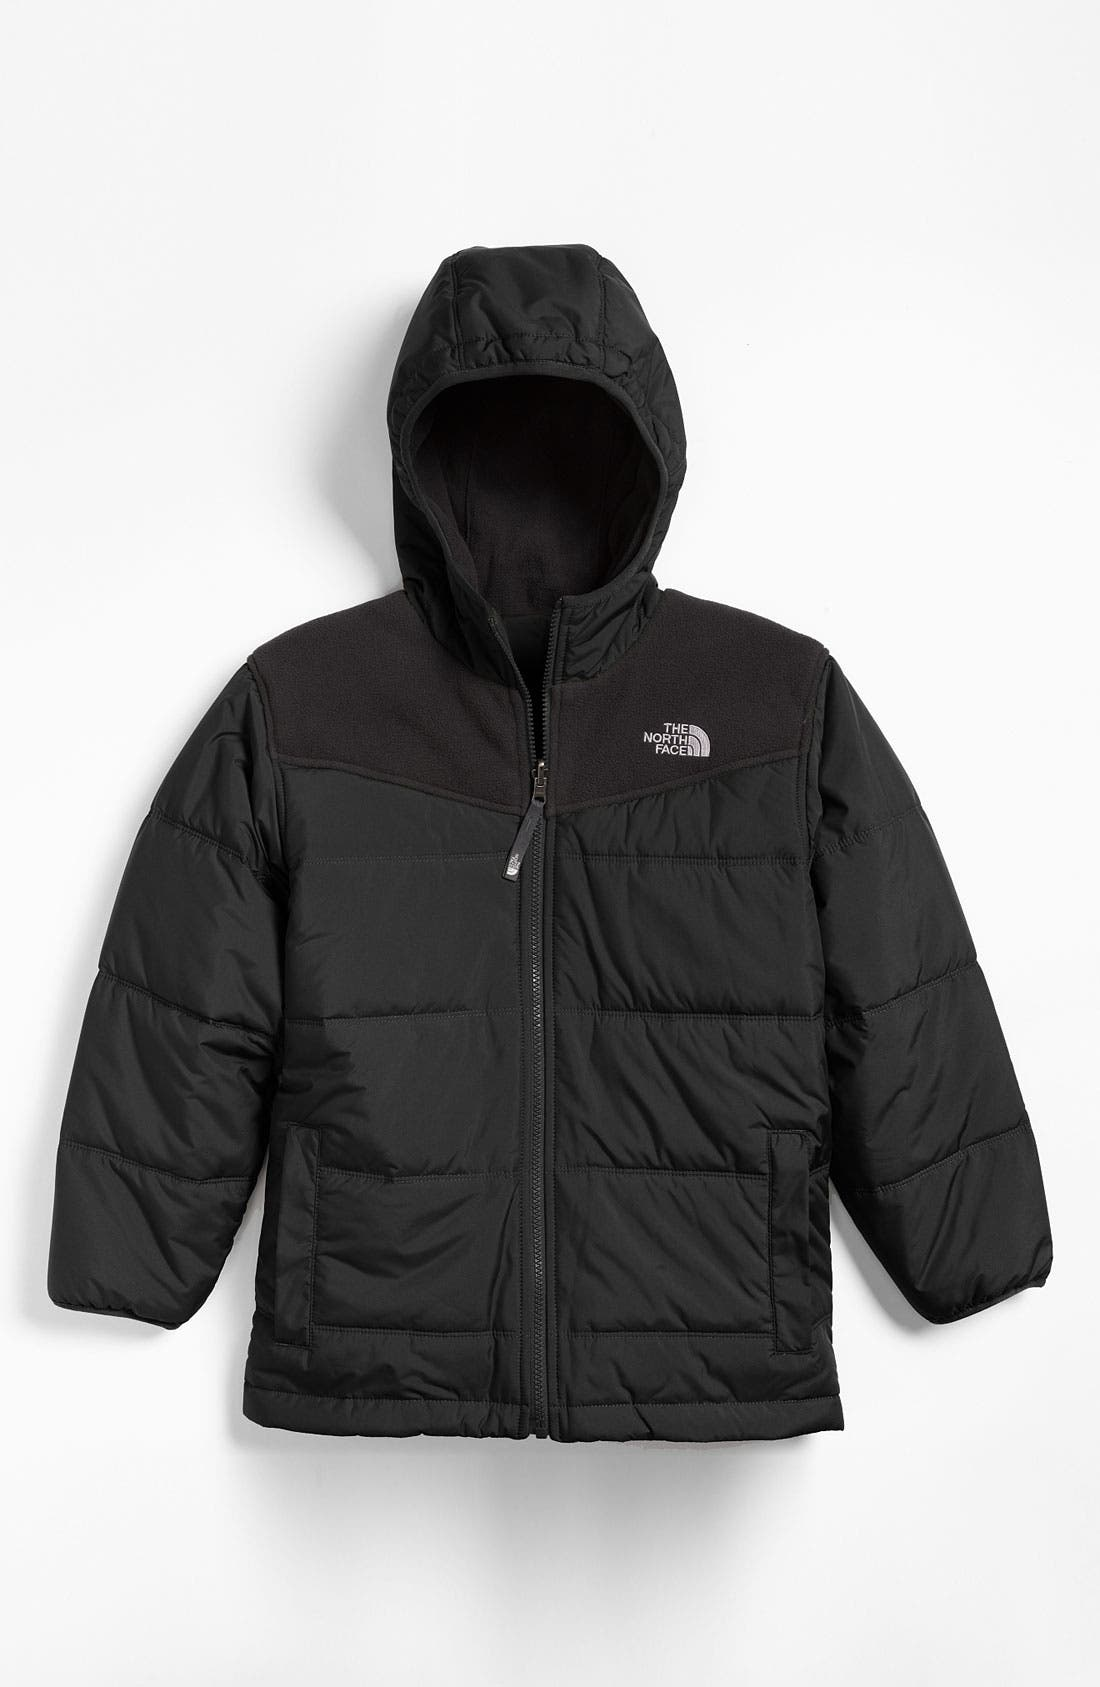 Main Image - The North Face 'True/False' Reversible Jacket (Big Boys)